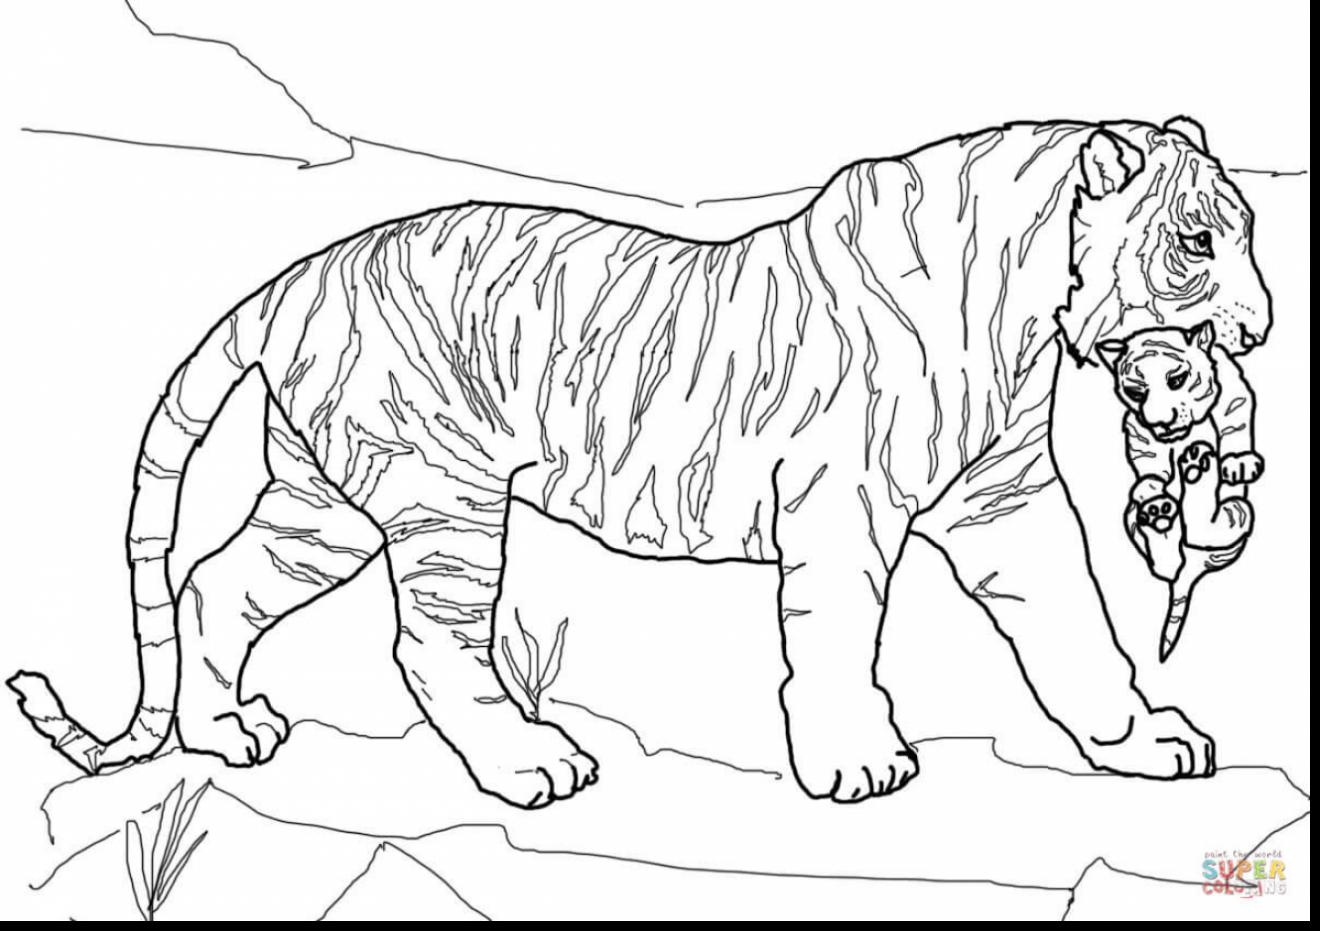 1320x931 Tiger Tank Drawing At Getdrawings Com Free For Personal Use